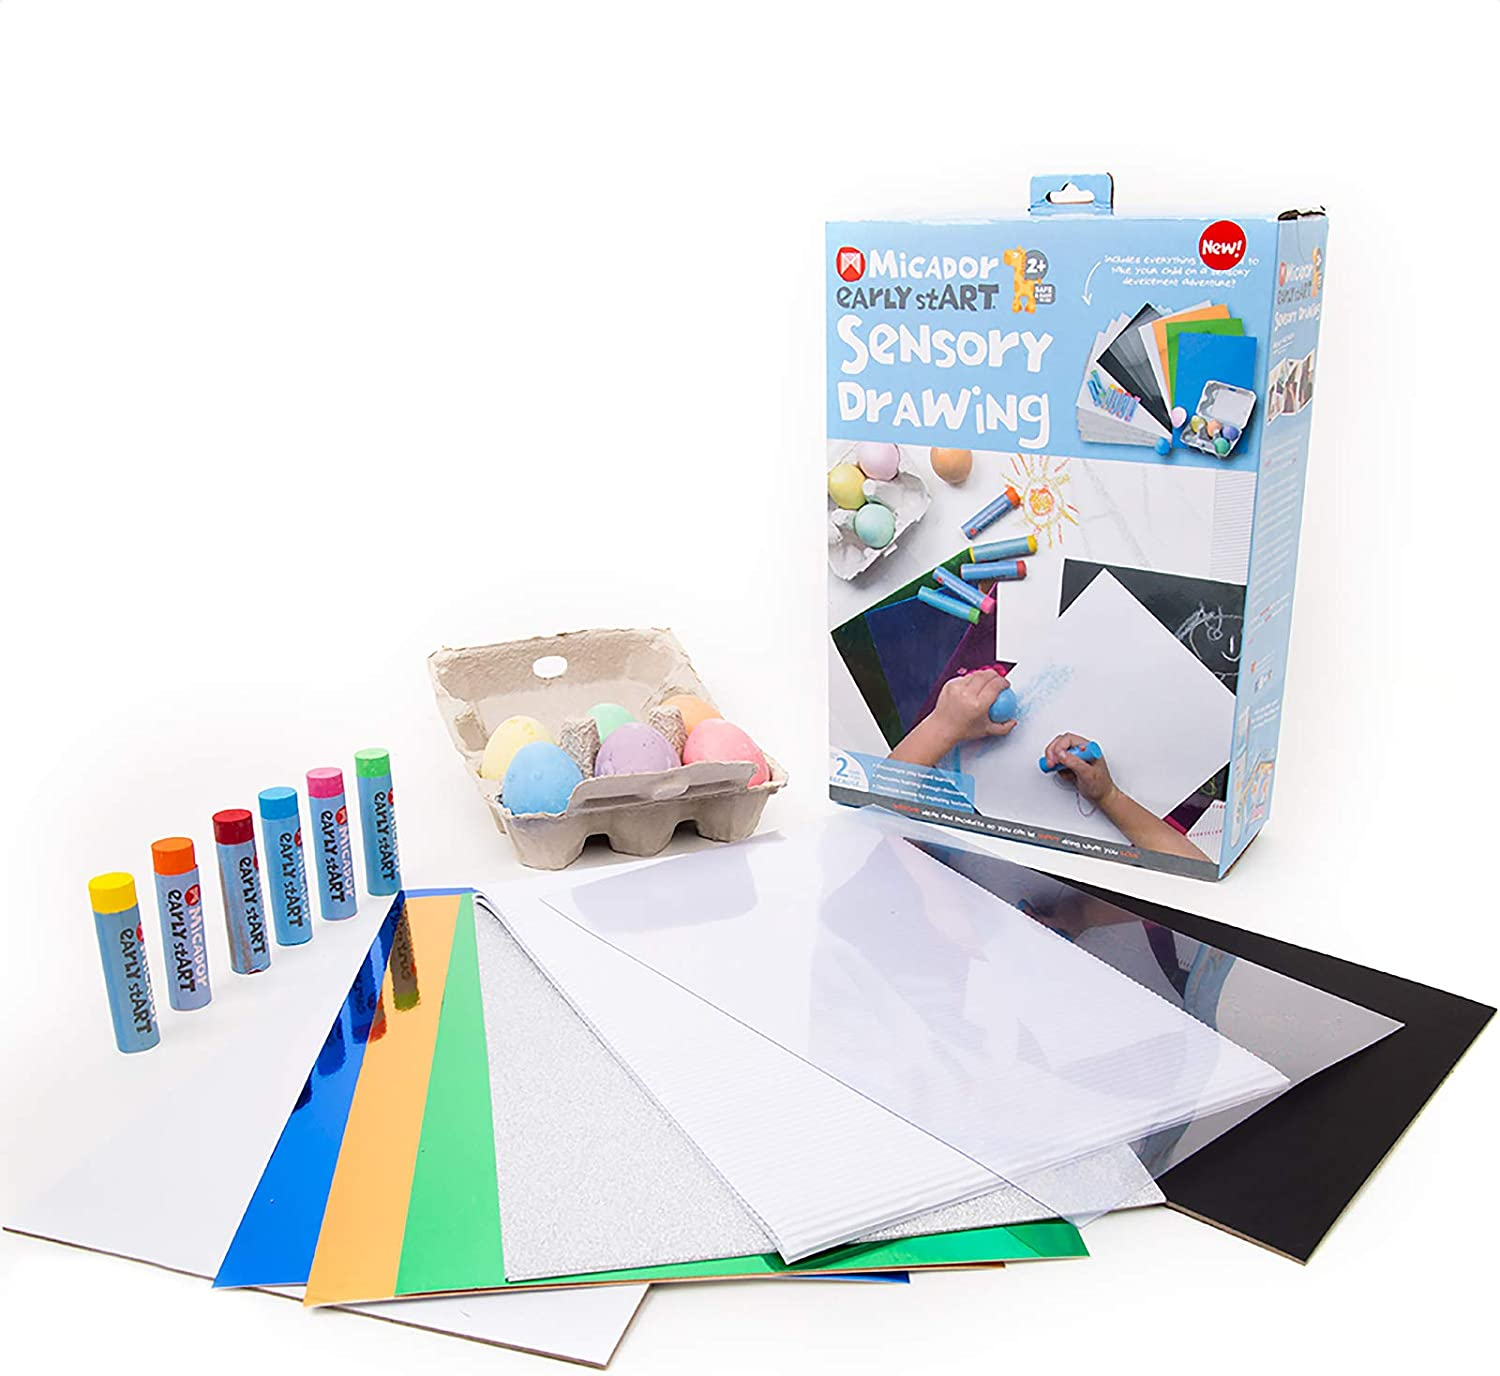 Assorted Micador early stART Sensory Drawing